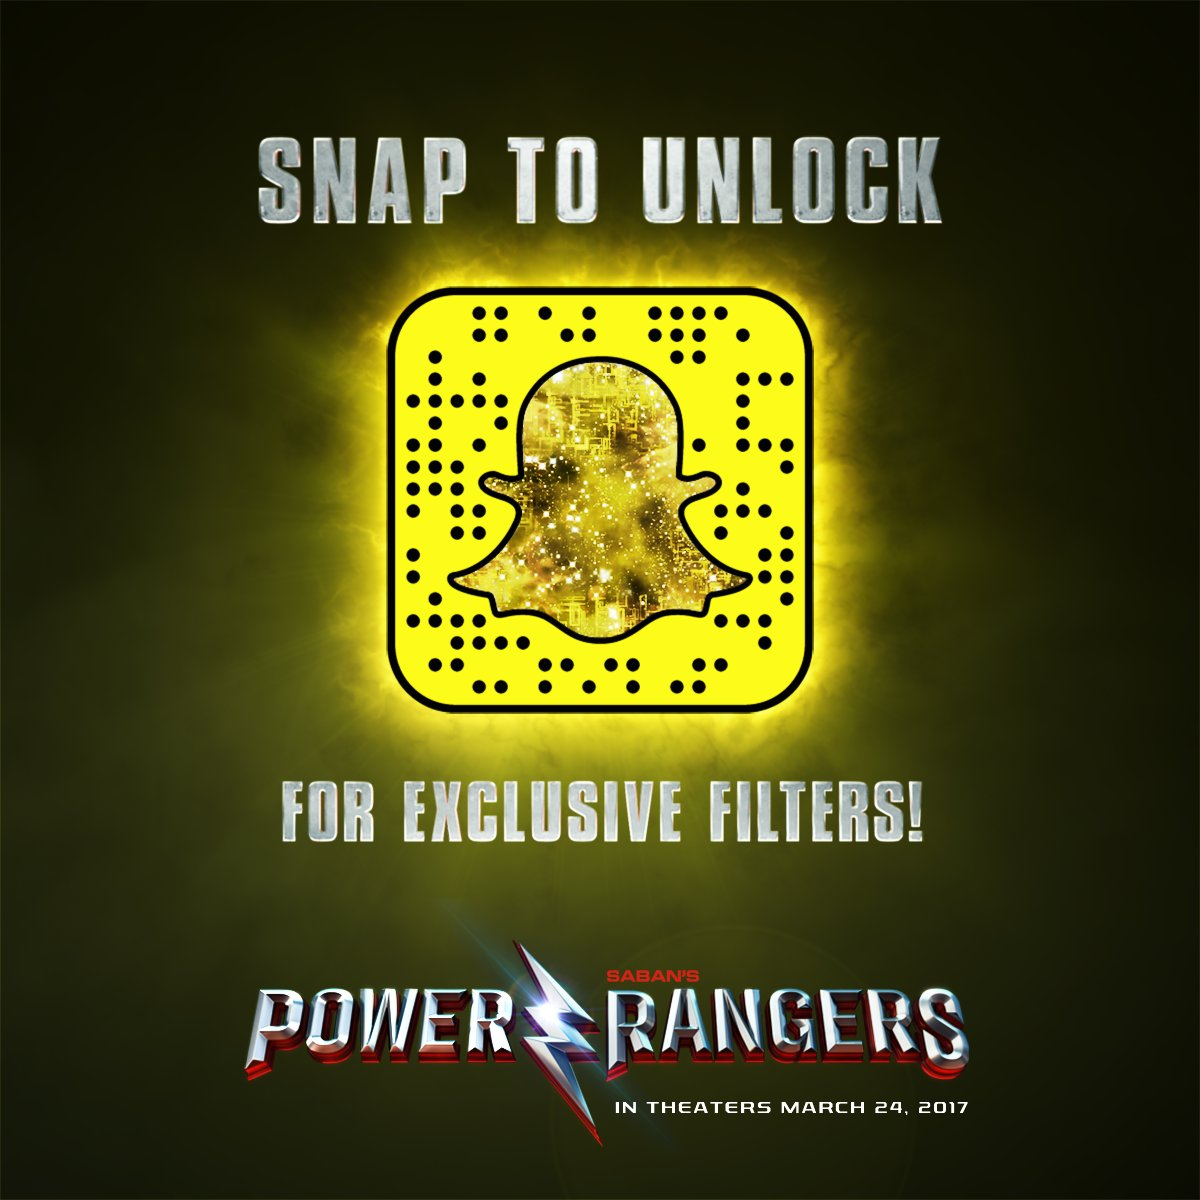 Power rangers snapchat